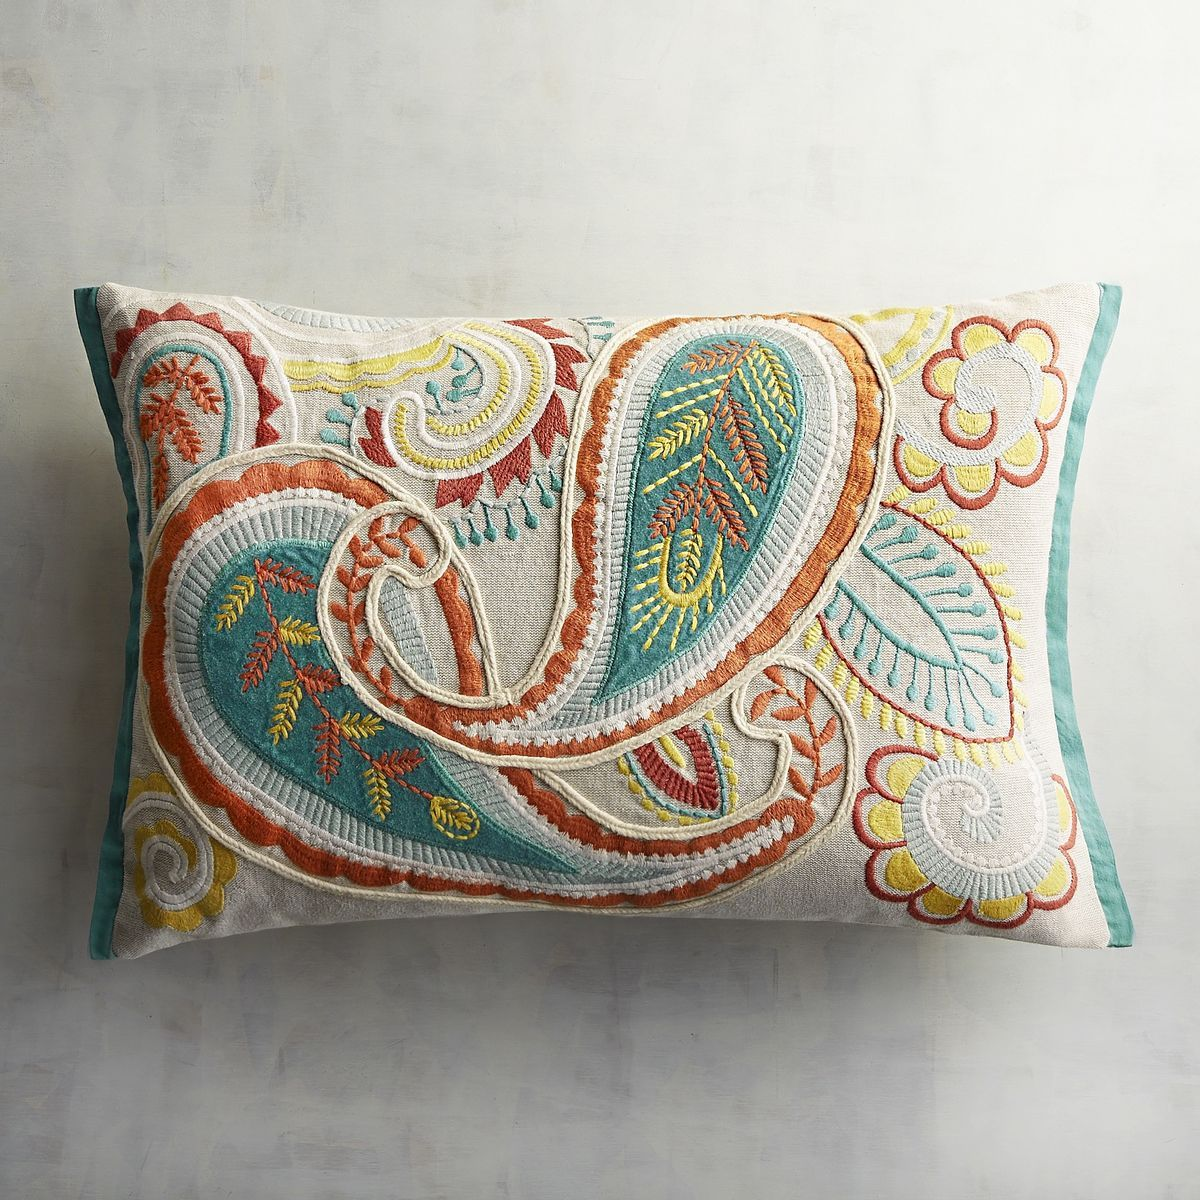 3176320 1 Jpg 1200 1200 Pillows Paisley Pillows Throw Pillows